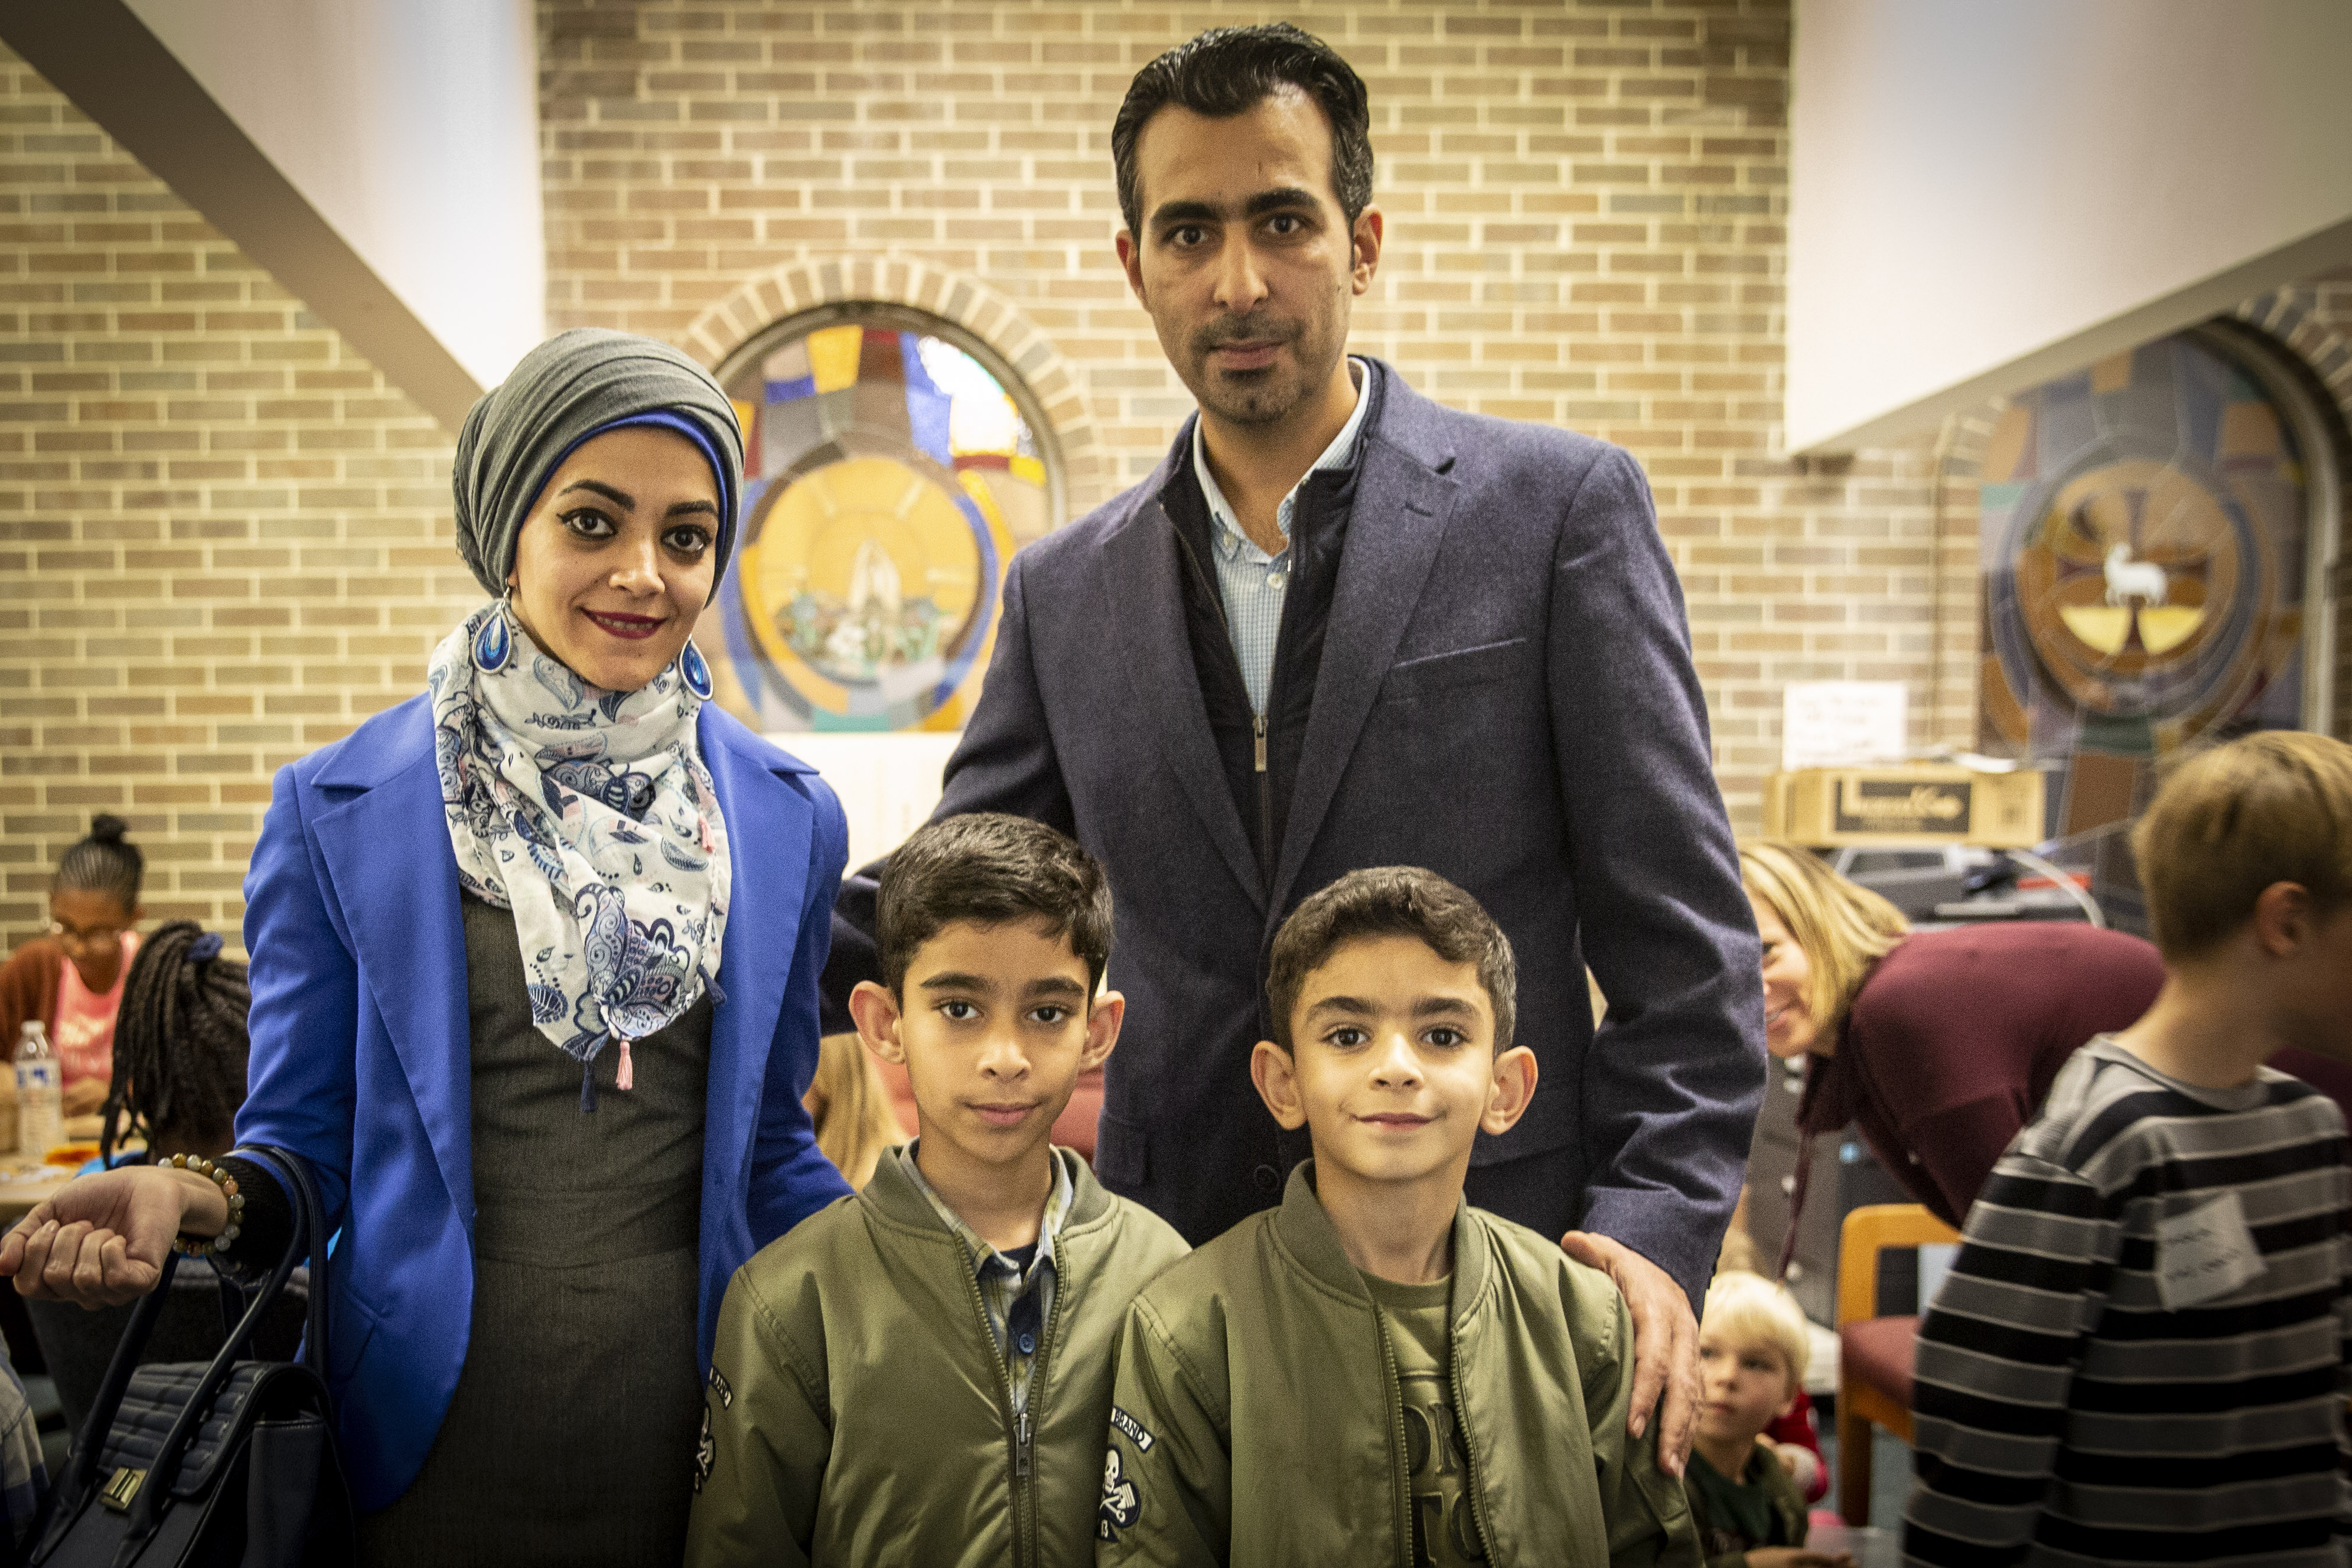 Photo: Refugee thanksgiving 5 | Mousa Alkhafaji and family